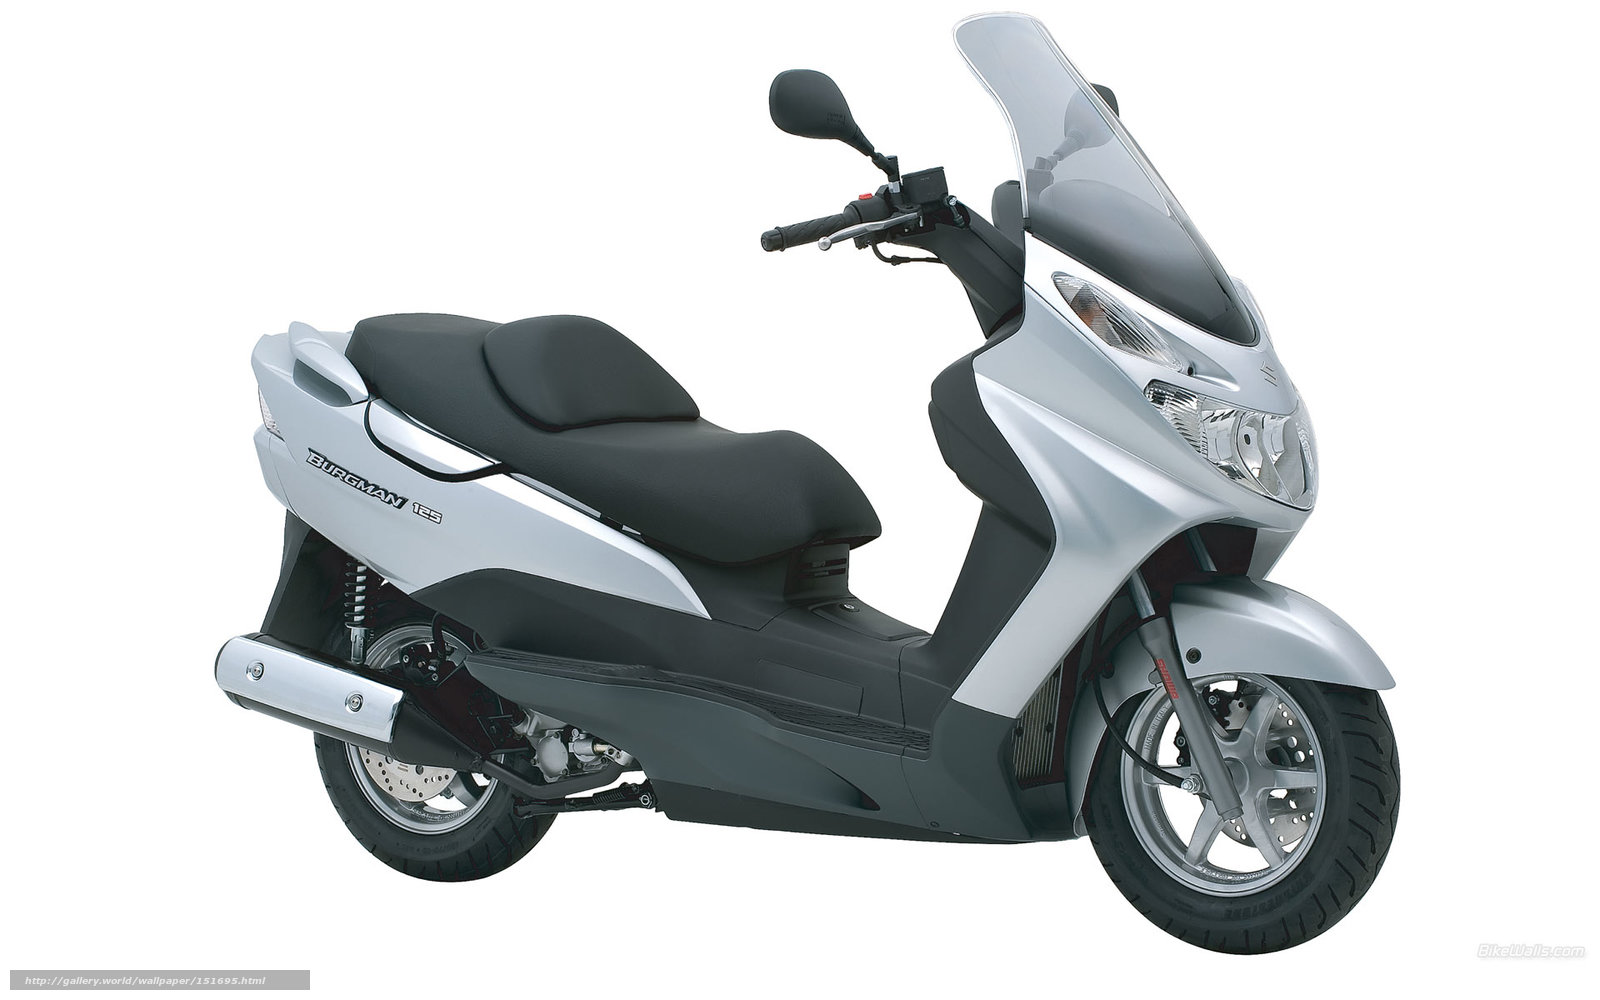 download wallpaper suzuki scooter moped burgman 125 burgman 125 2005 free desktop wallpaper. Black Bedroom Furniture Sets. Home Design Ideas